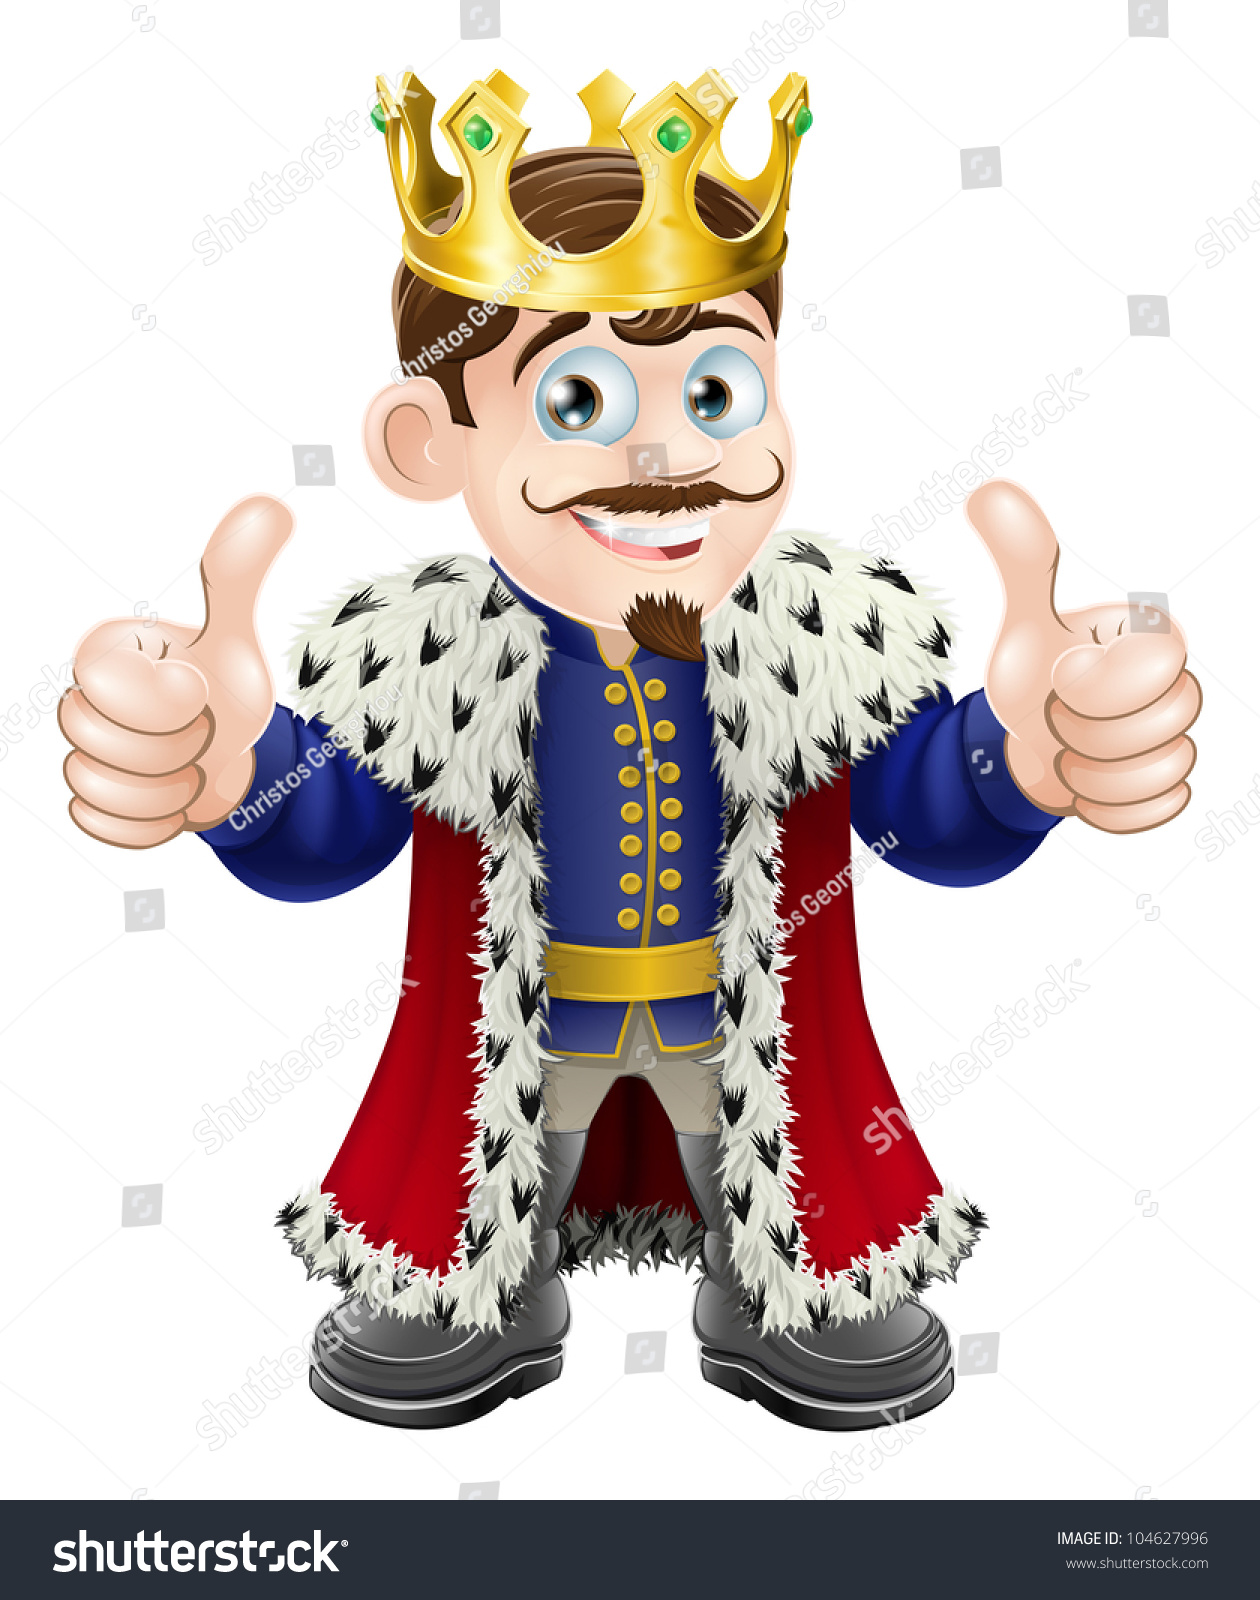 Cartoon Illustration Cute King Crown Cape Stock Vector ...